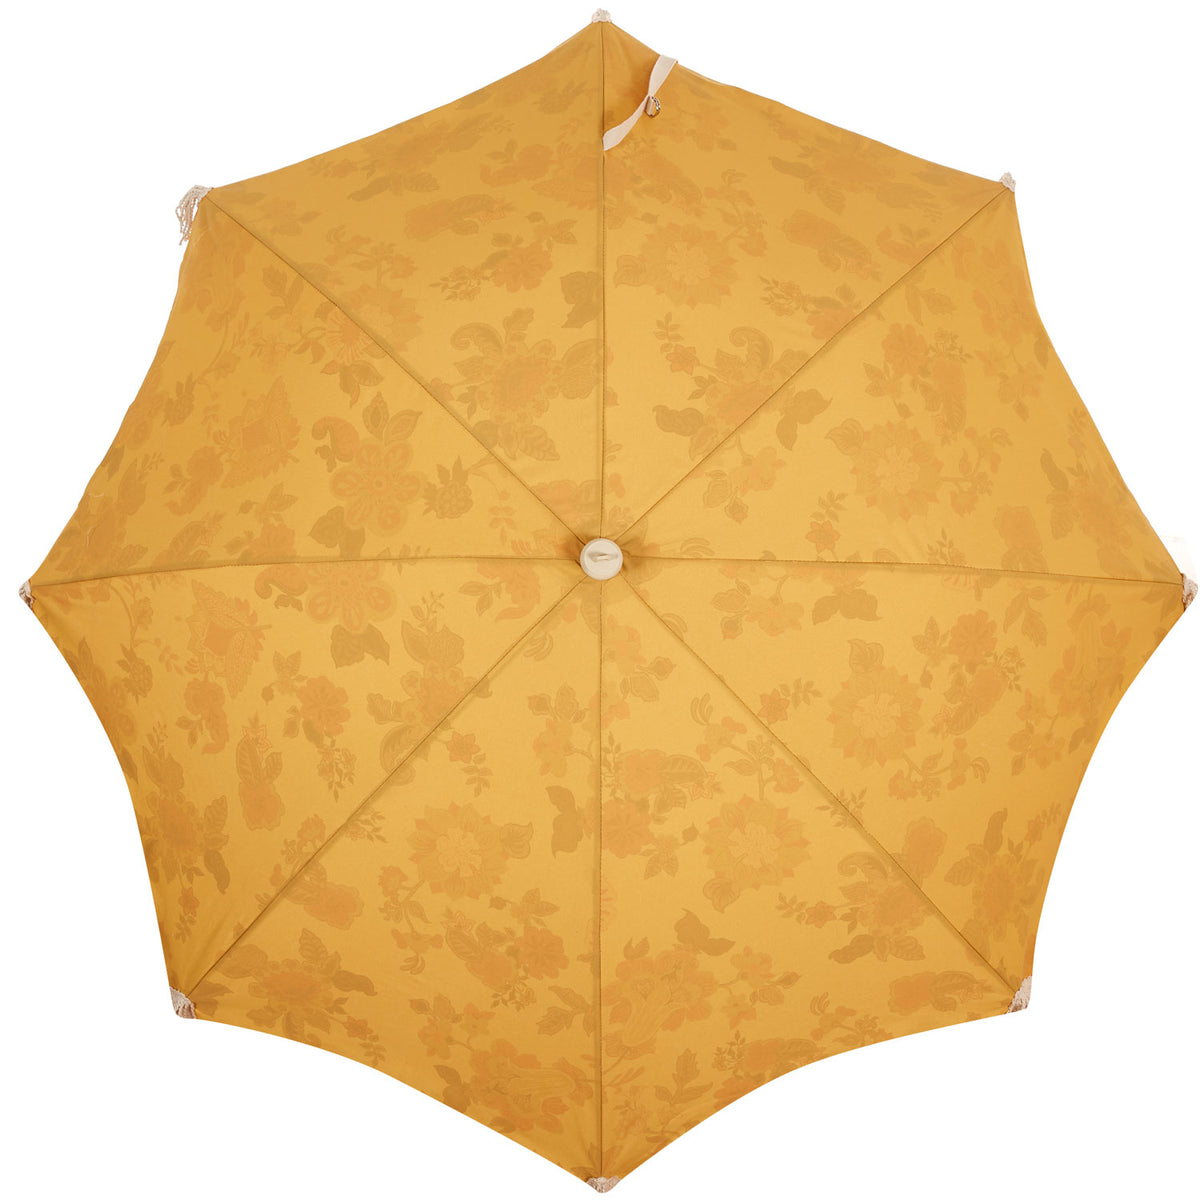 The Premium Beach Umbrella - Paisley Bay